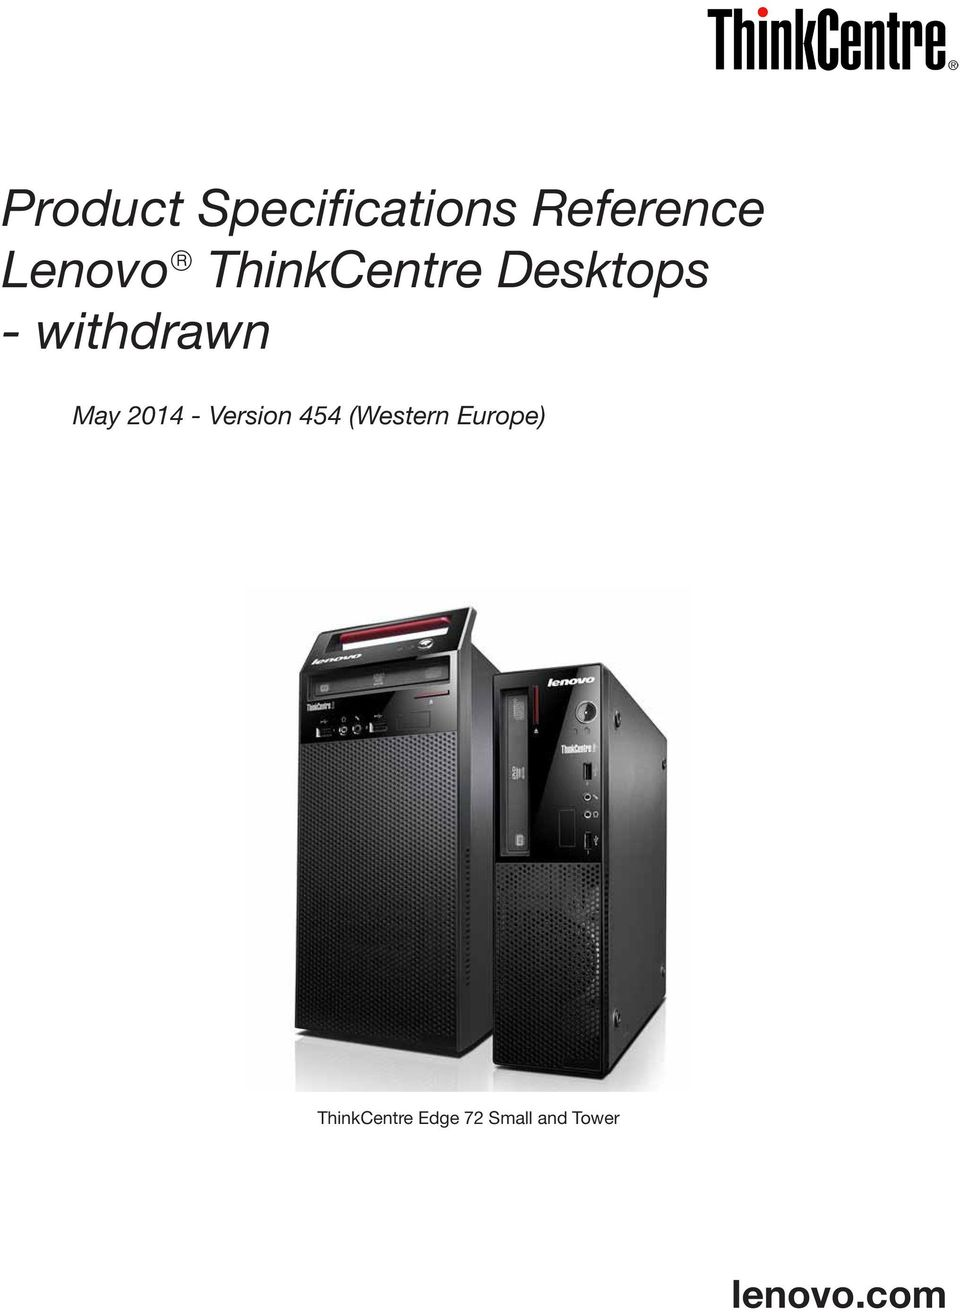 Product Specifications Reference Lenovo ThinkCentre Desktops